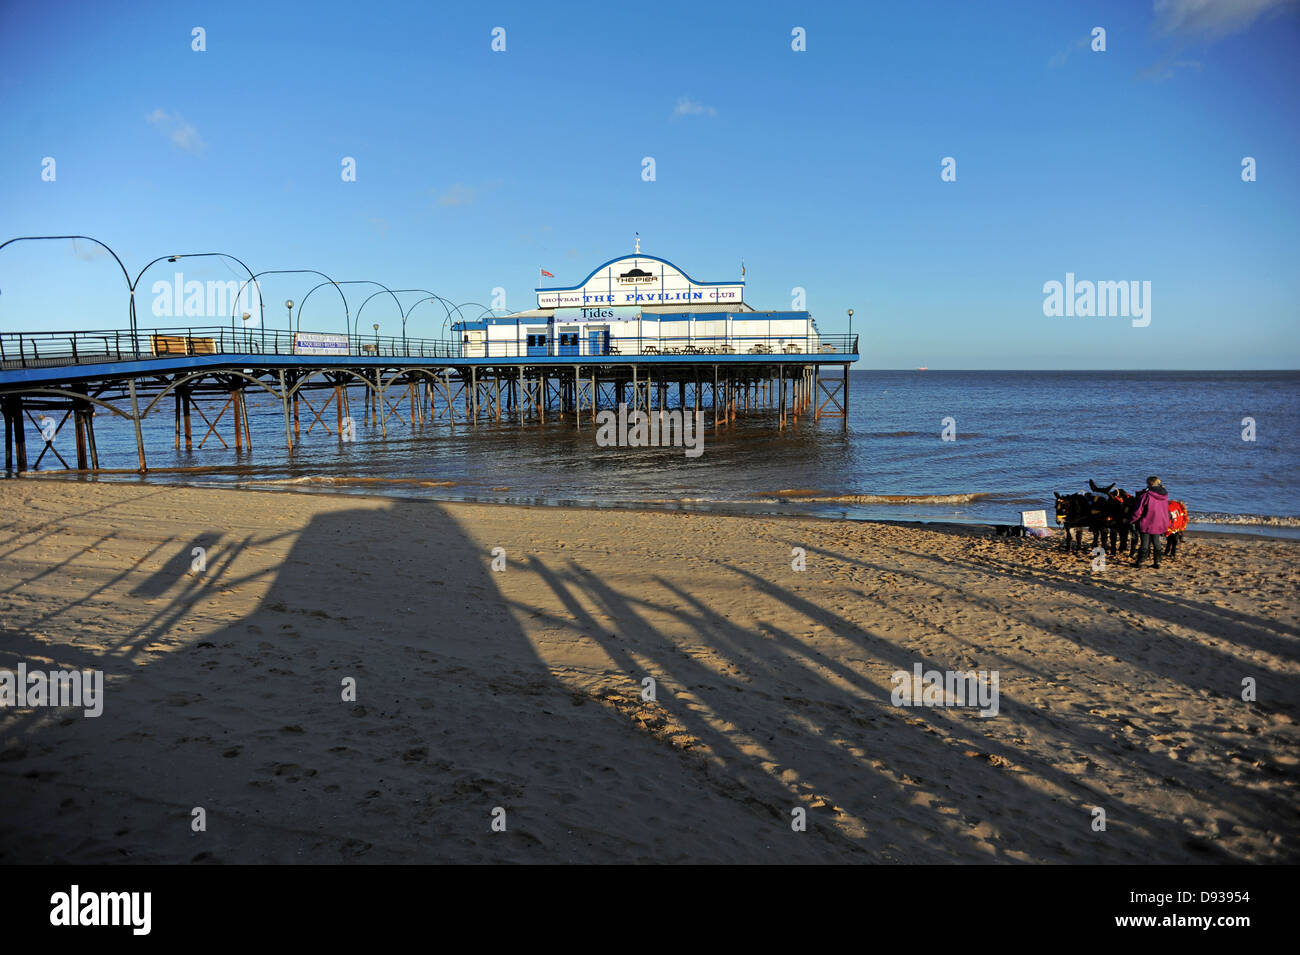 Cleethorpes Pier 39 a traditional victorian pier which is now a nightclub and is currently up for sale - Stock Image